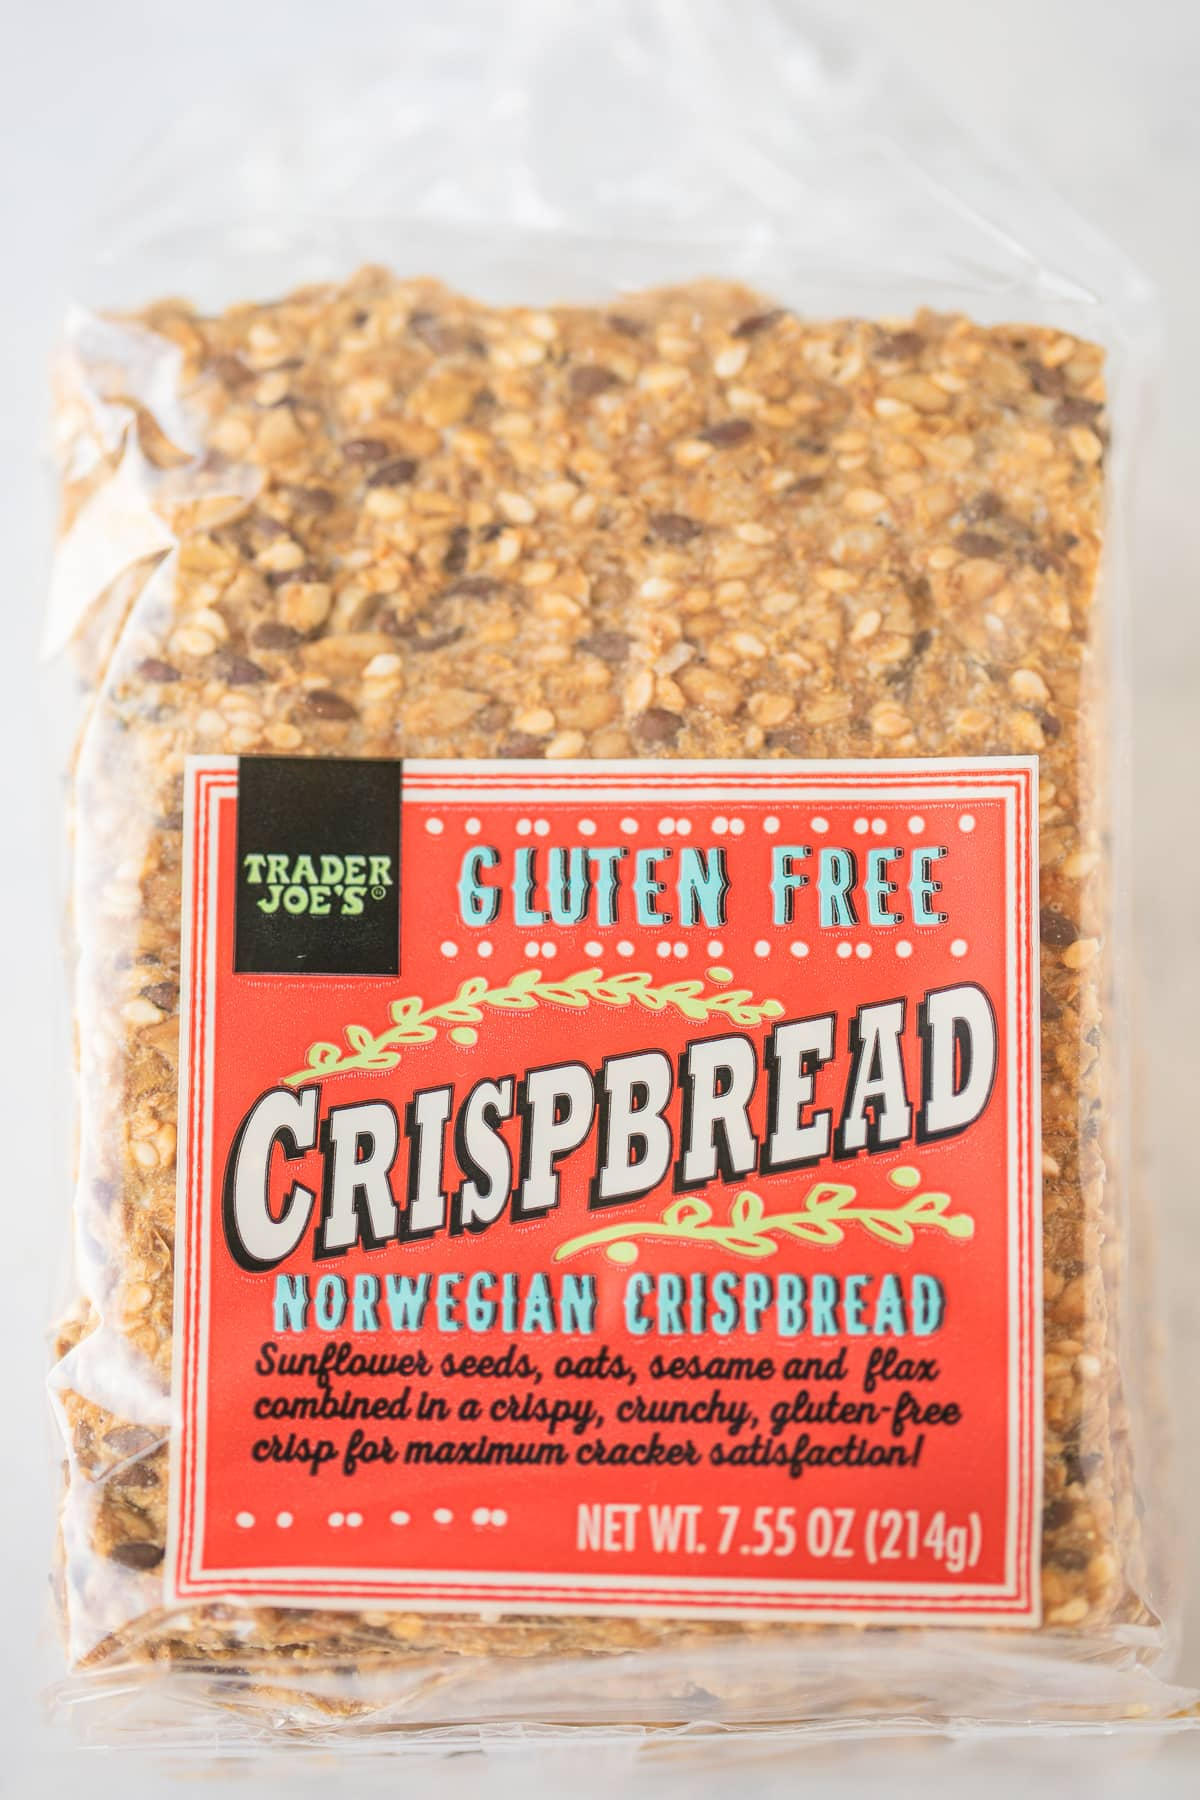 package of gluten free crisp breads from Trader Joes